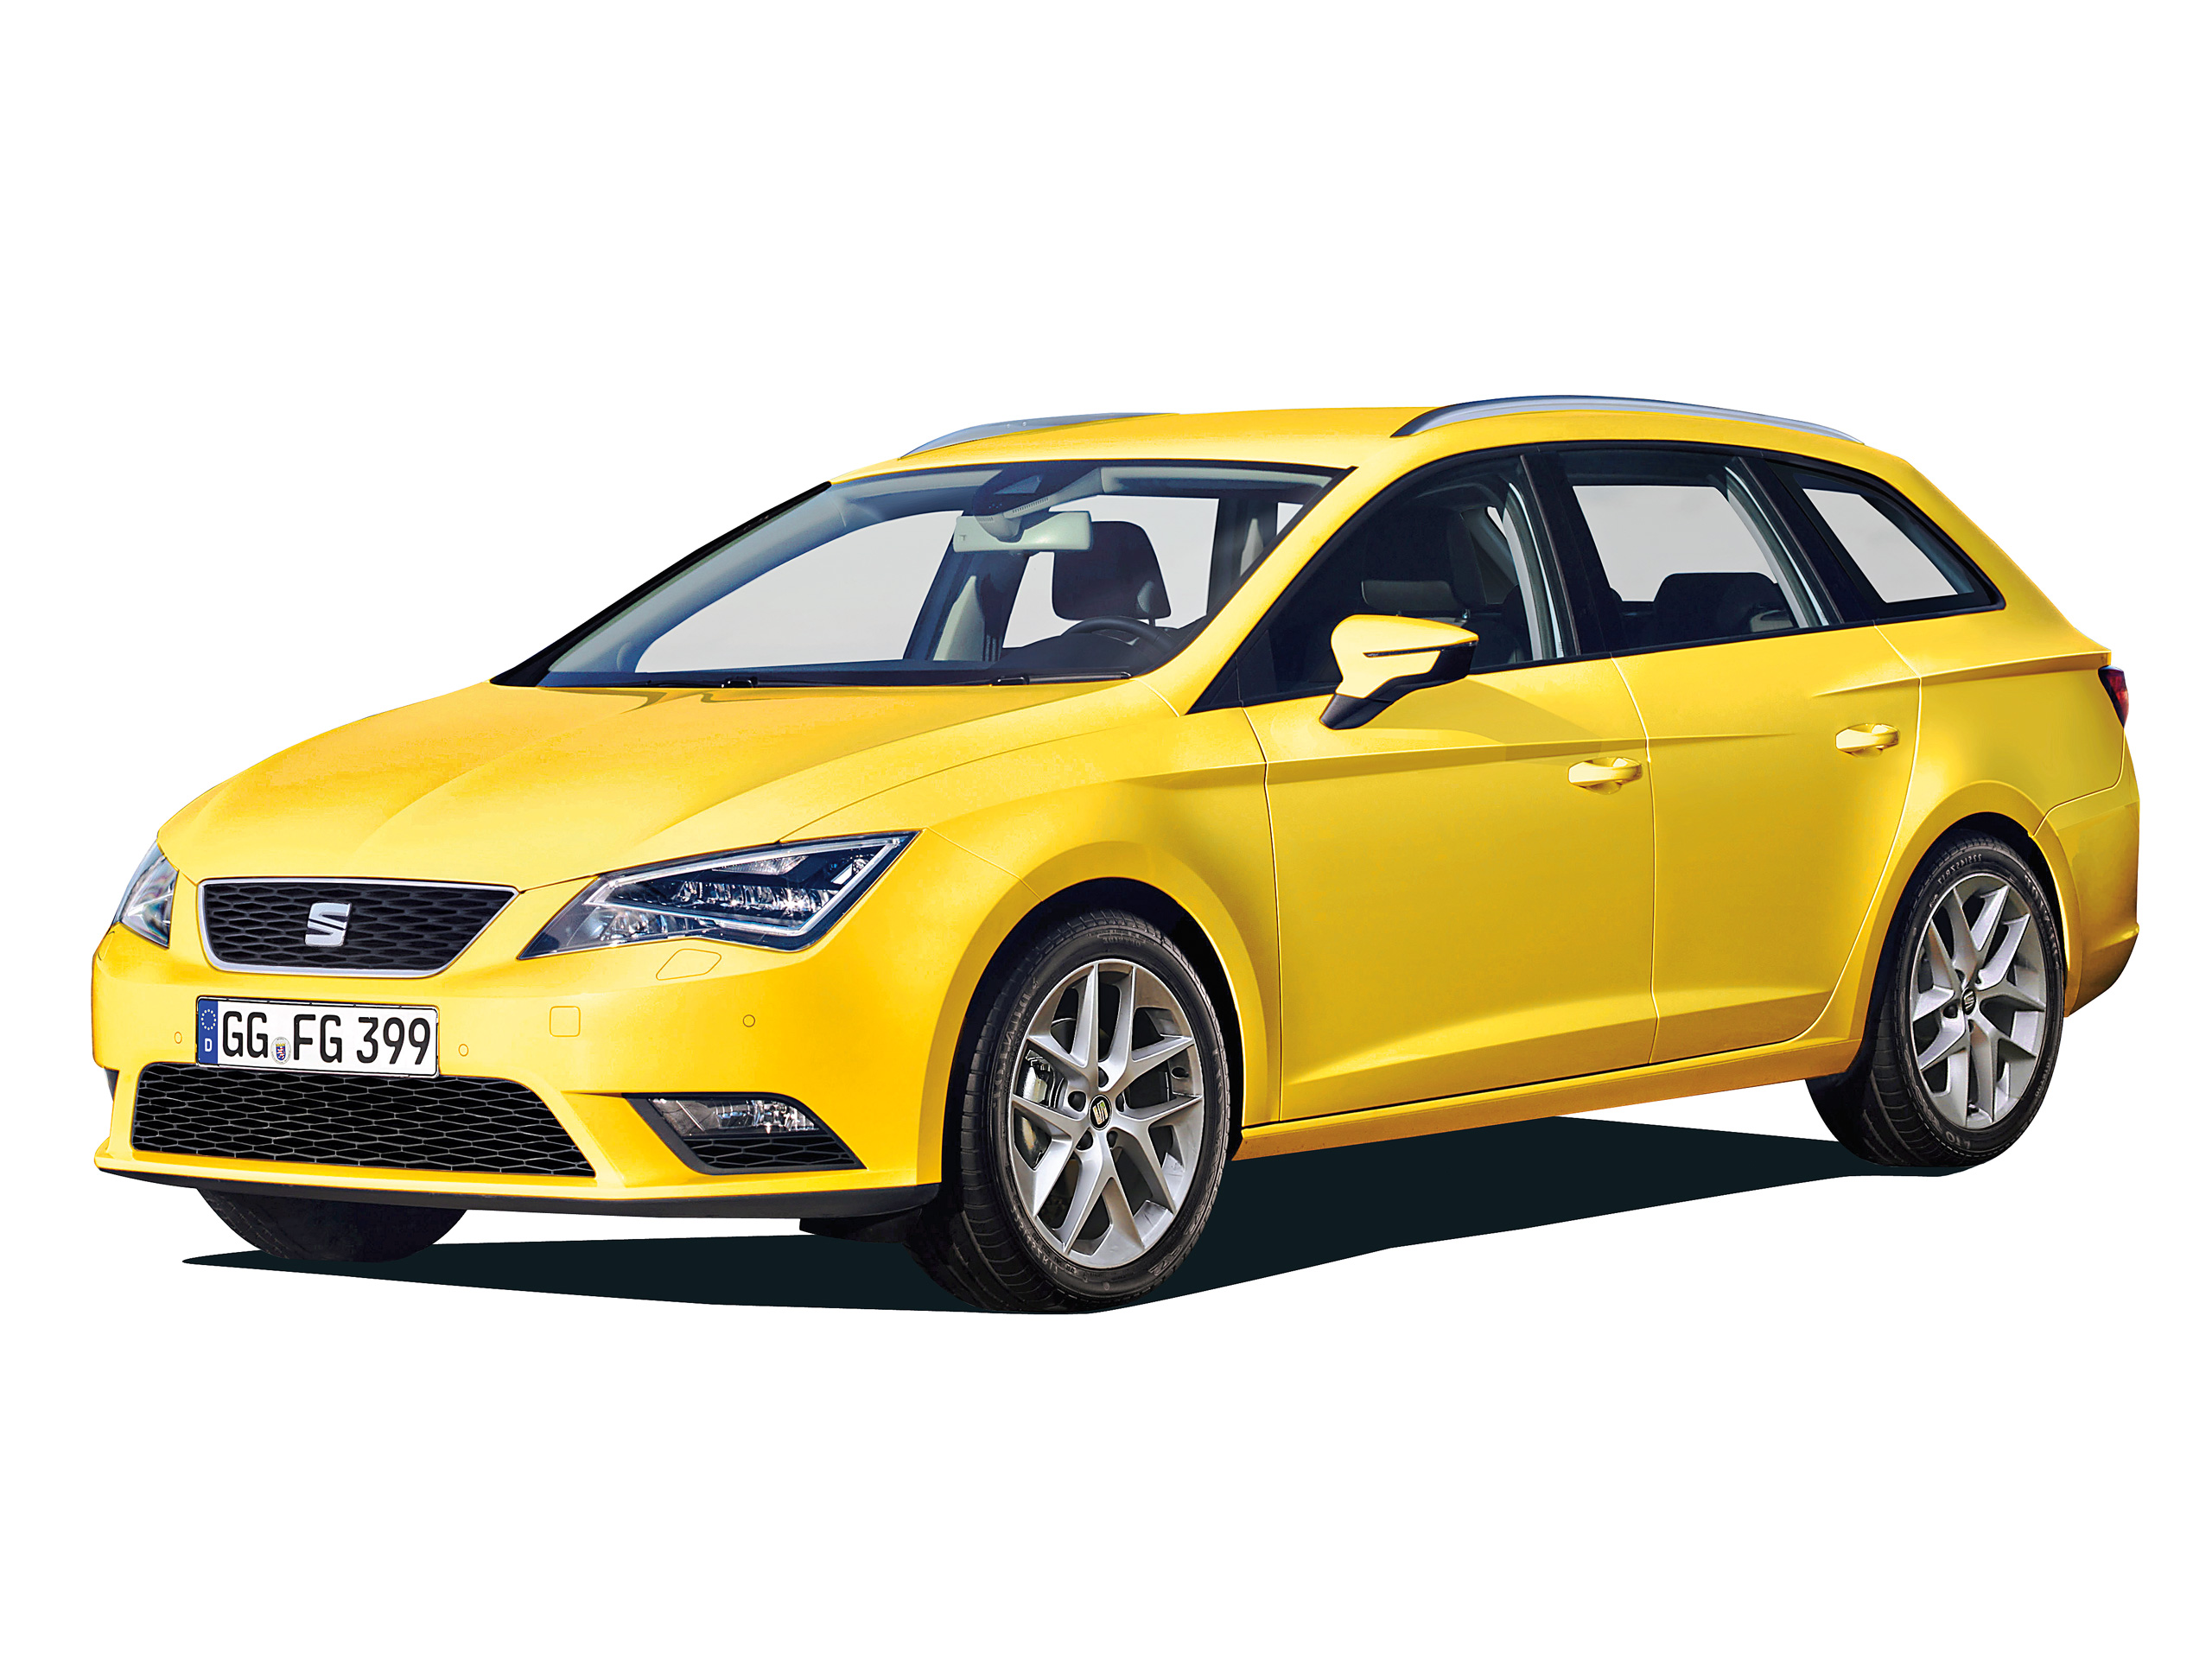 seat leon st photos 13 on better parts ltd. Black Bedroom Furniture Sets. Home Design Ideas